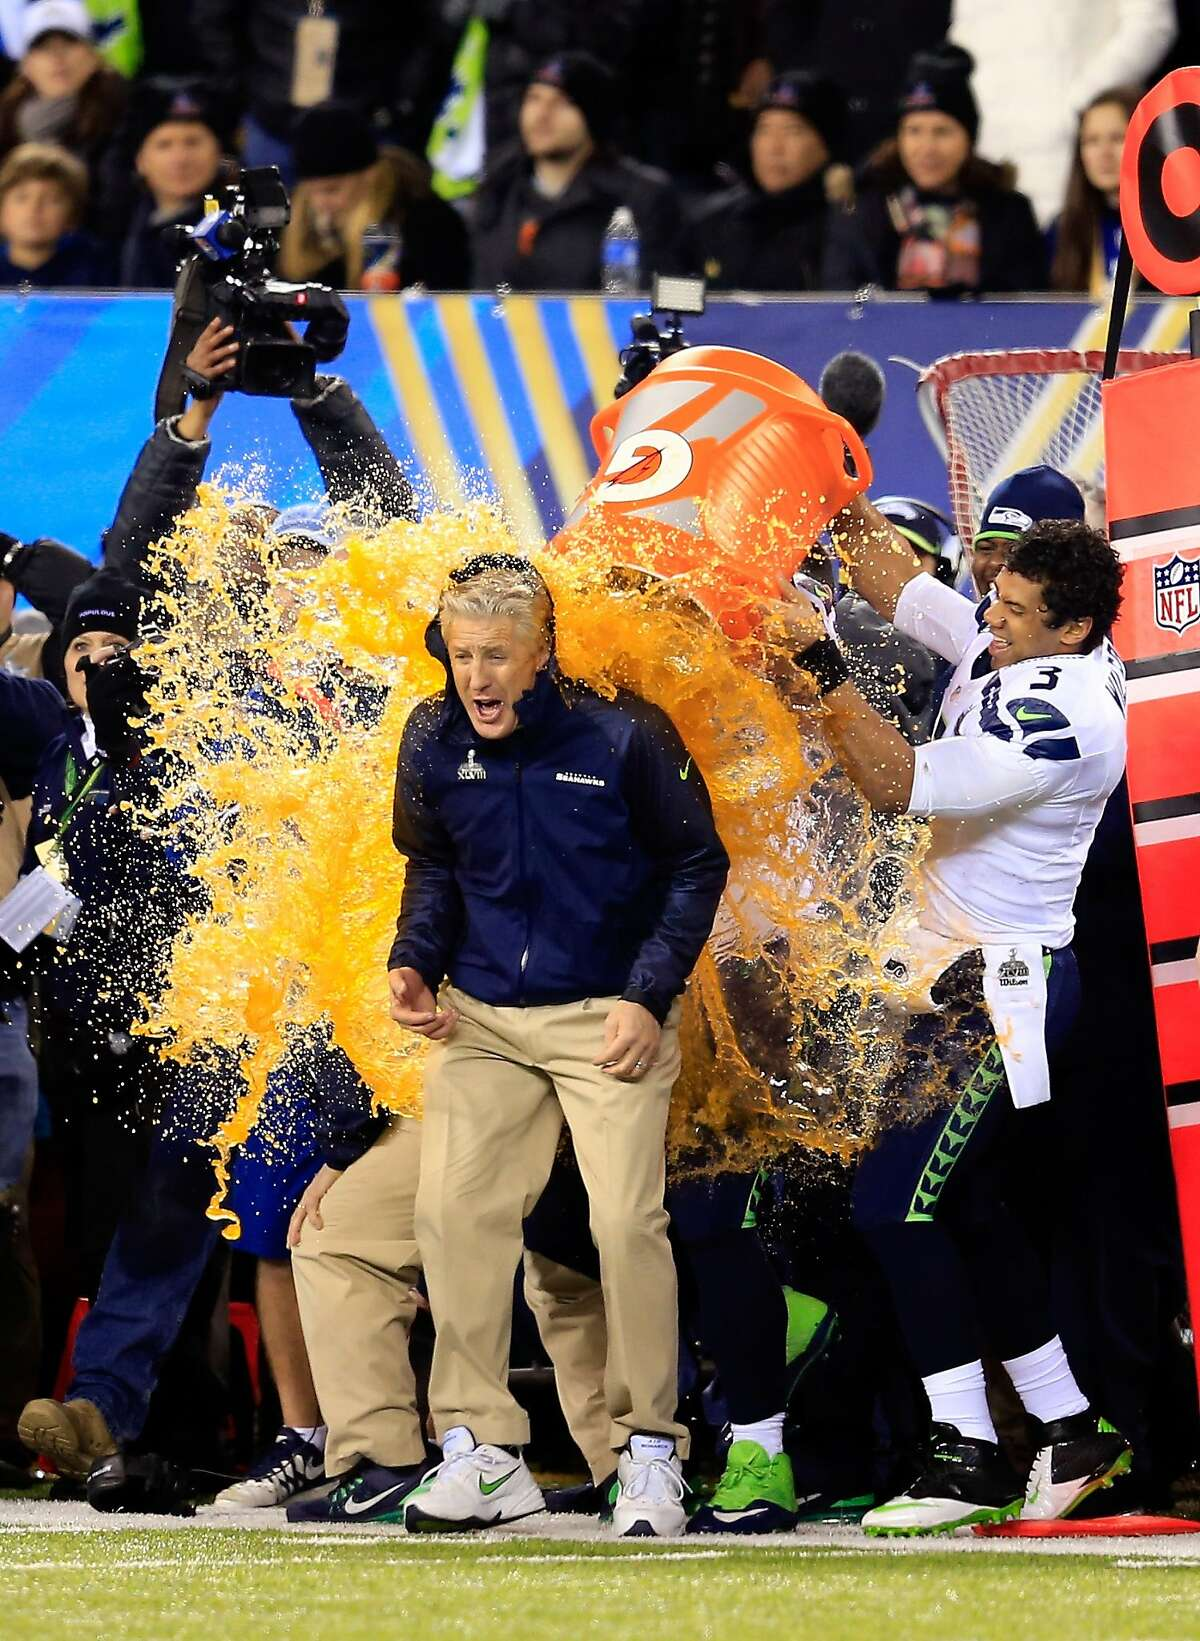 What color will the liquid be that is poured on the game winning coach? Lime/Green/Yellow - 9-to-2 Orange - 6-to-1 Red - 7-to-2 Clear/Water - 8-to-1 Blue - 9-to-1 Purple - 5-to-6